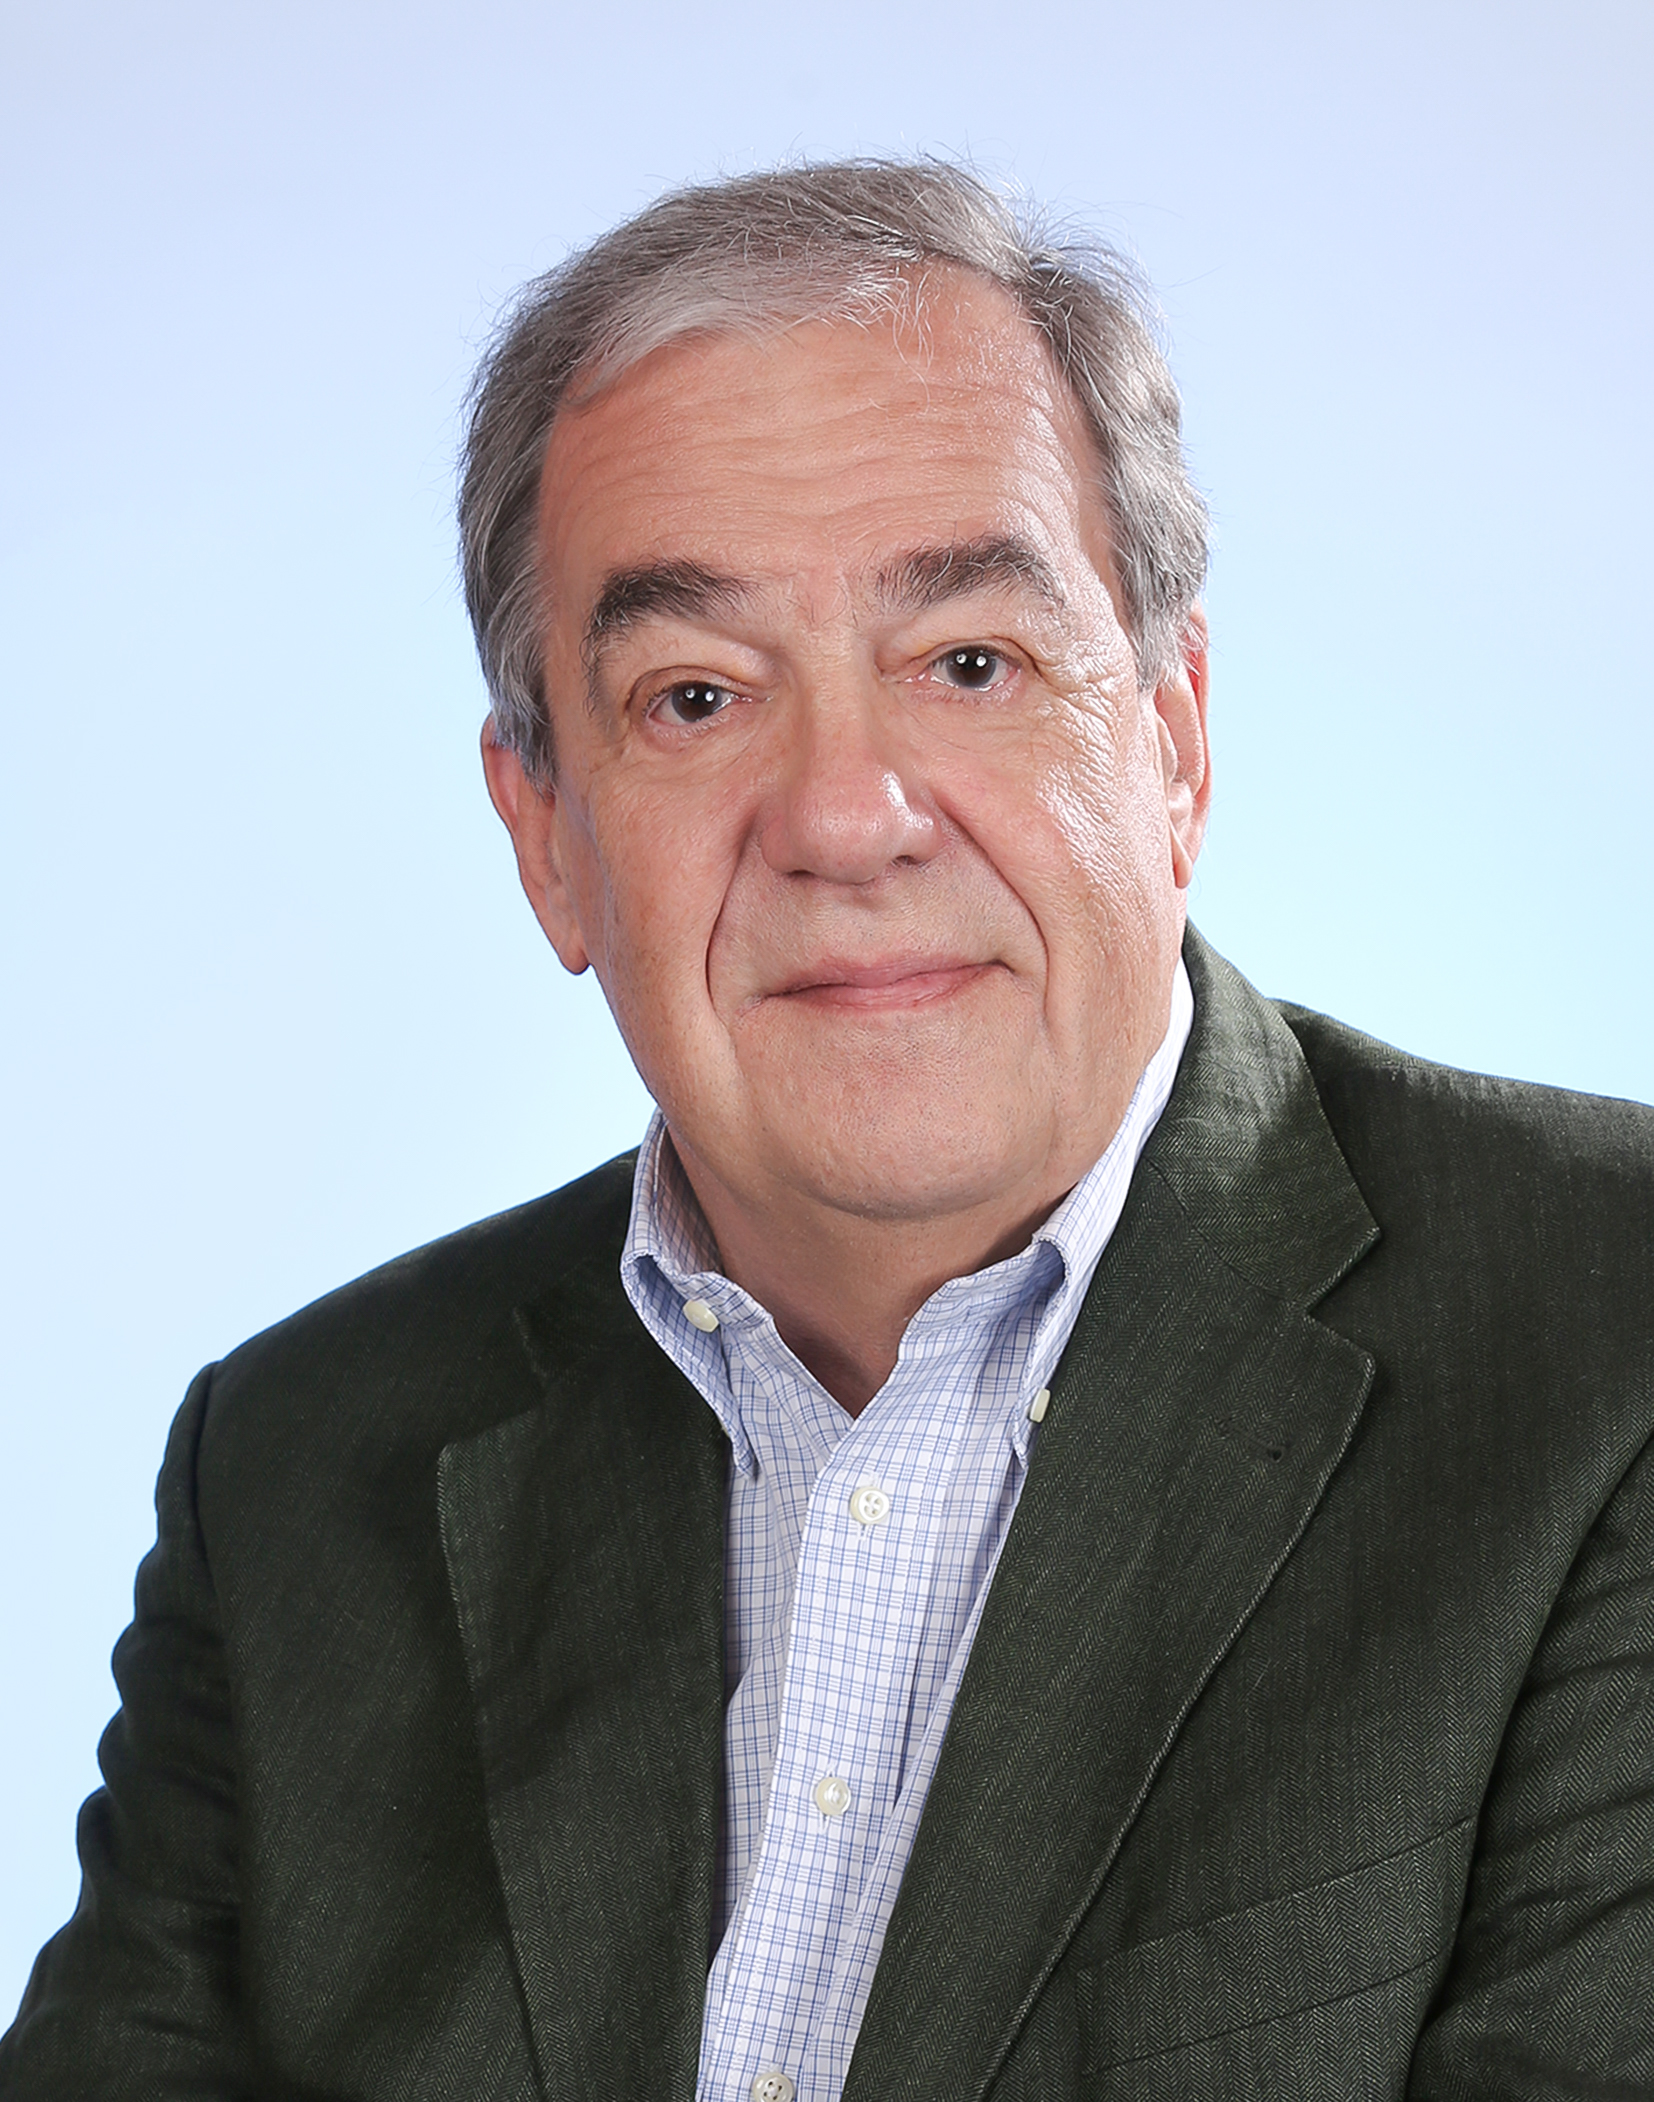 Dr. Ulrich Roell